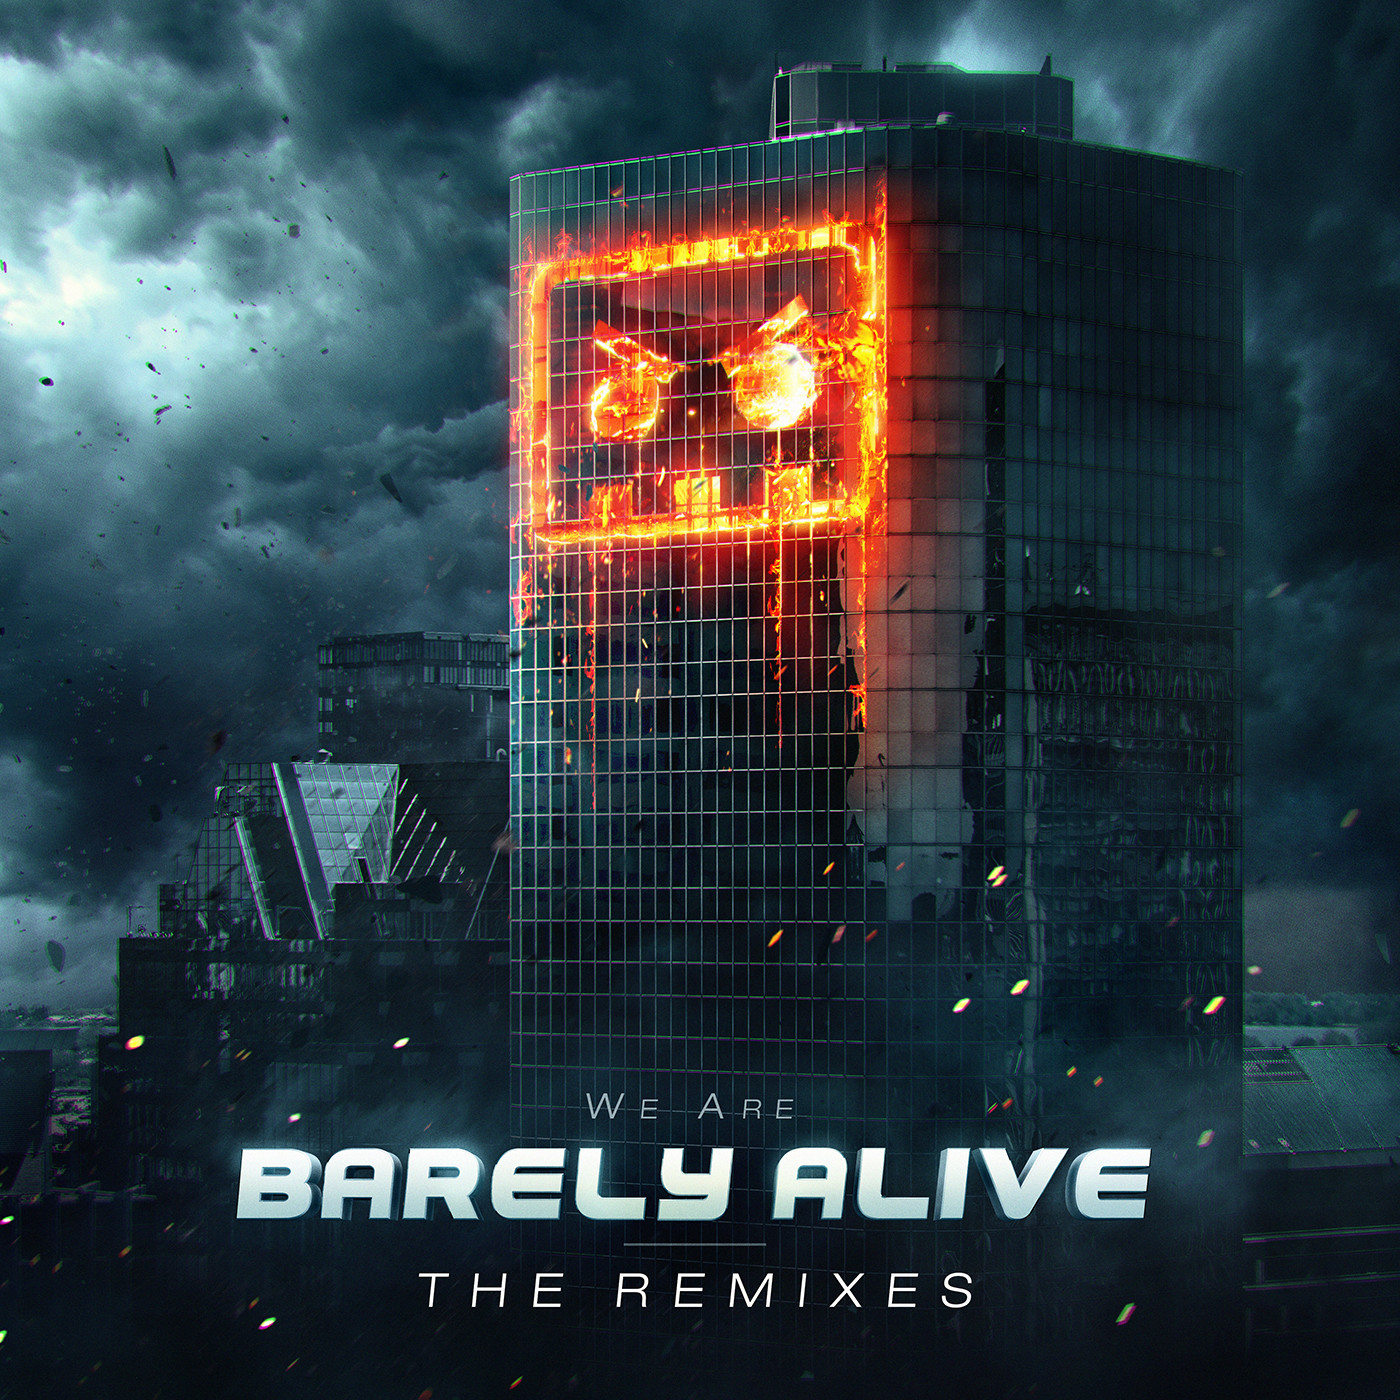 Eric hallquist we are barely alive the remixes art 1400px